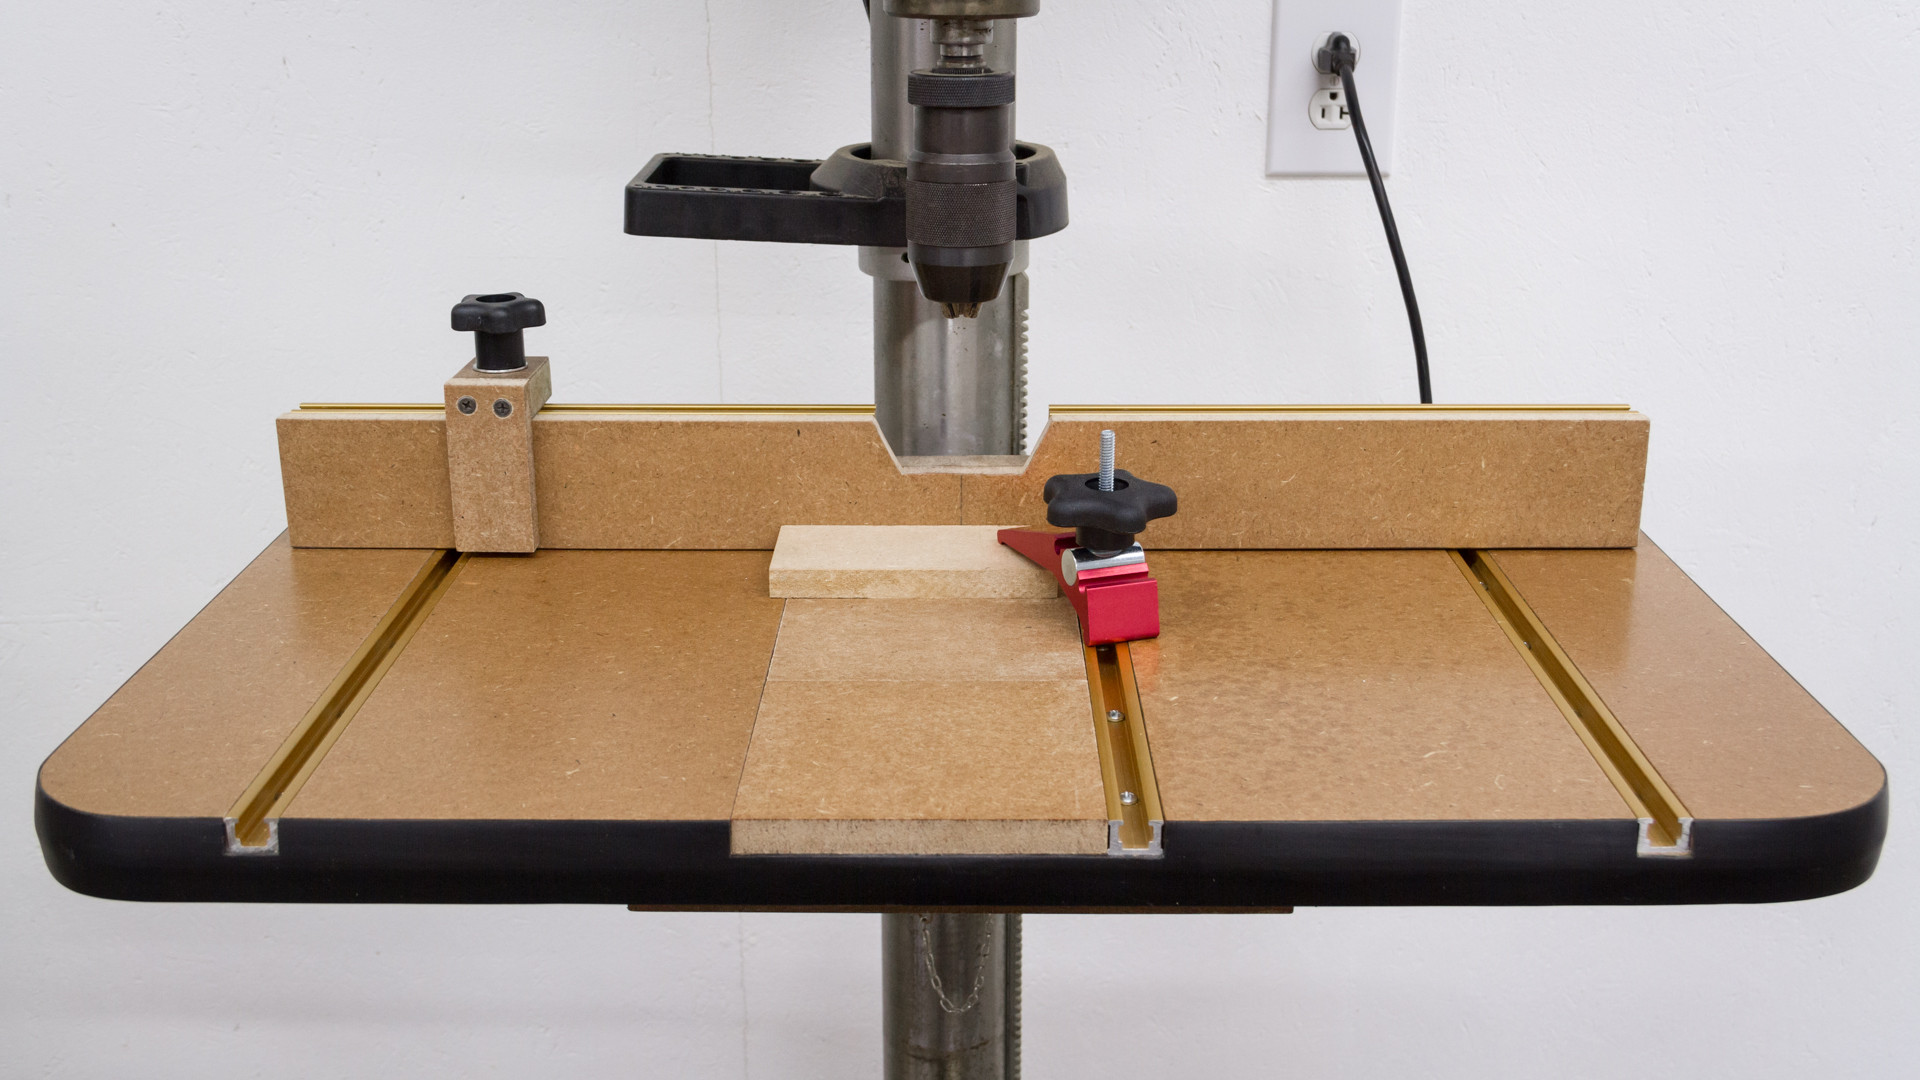 Best ideas about DIY Drill Press Table . Save or Pin Build a Drill Press Table Now.